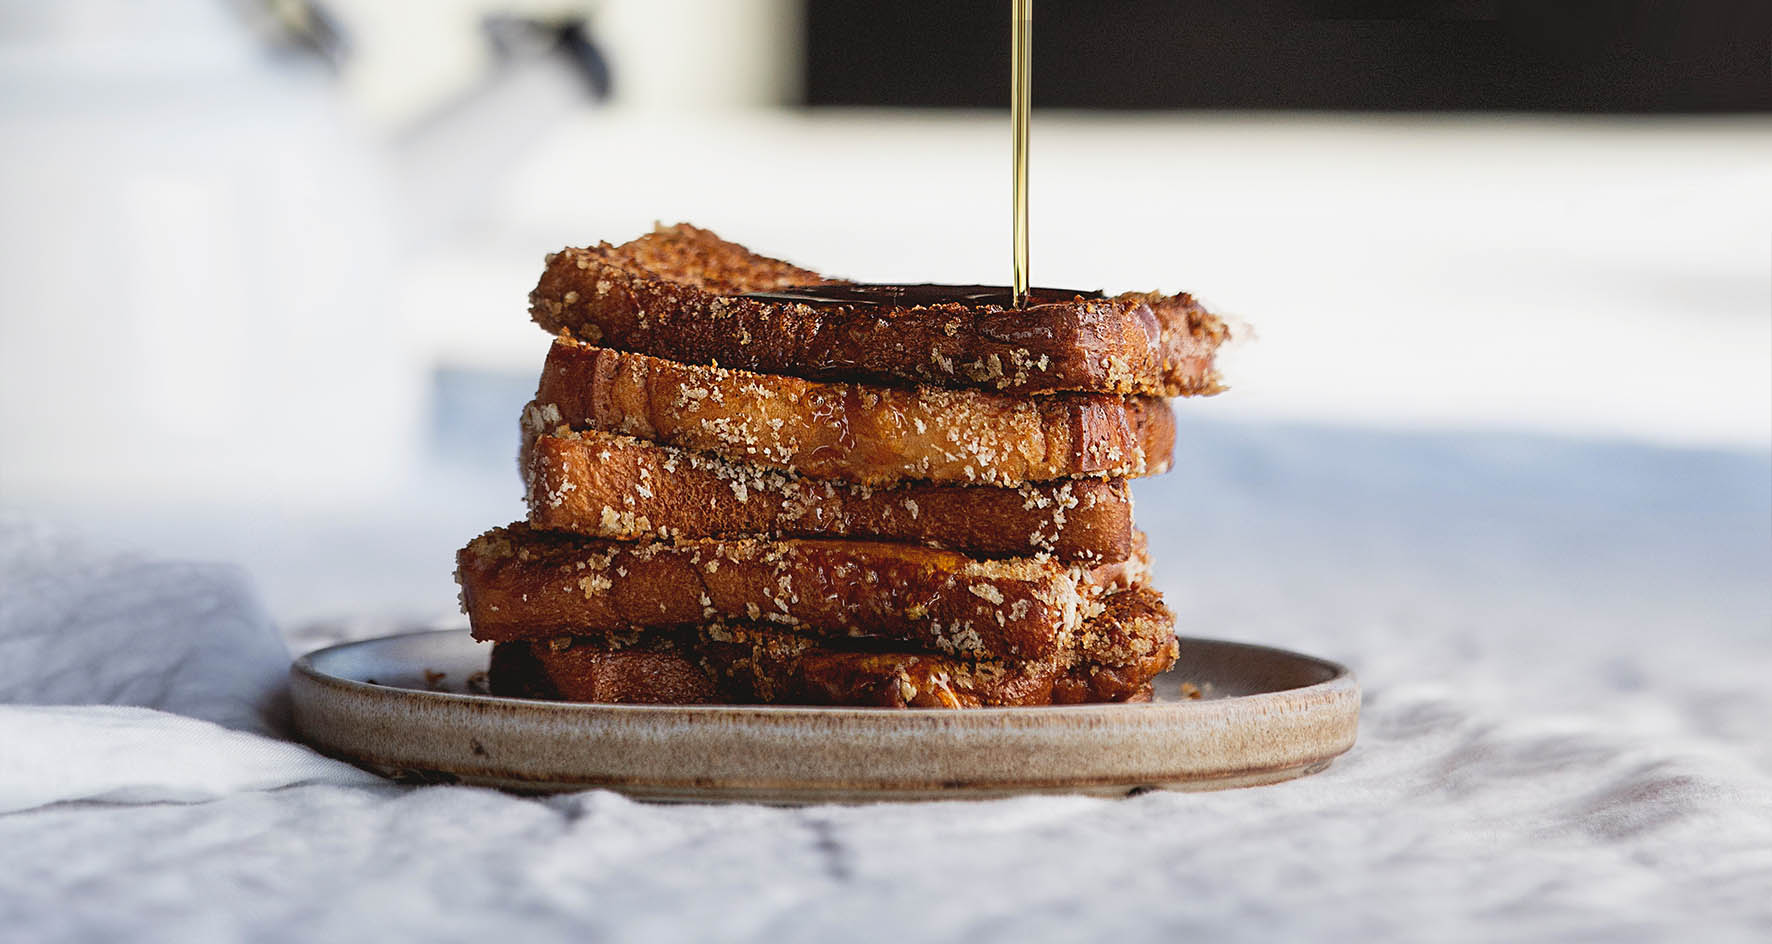 A close up shot of a stack of French toast with maple syrup drizzling on top.